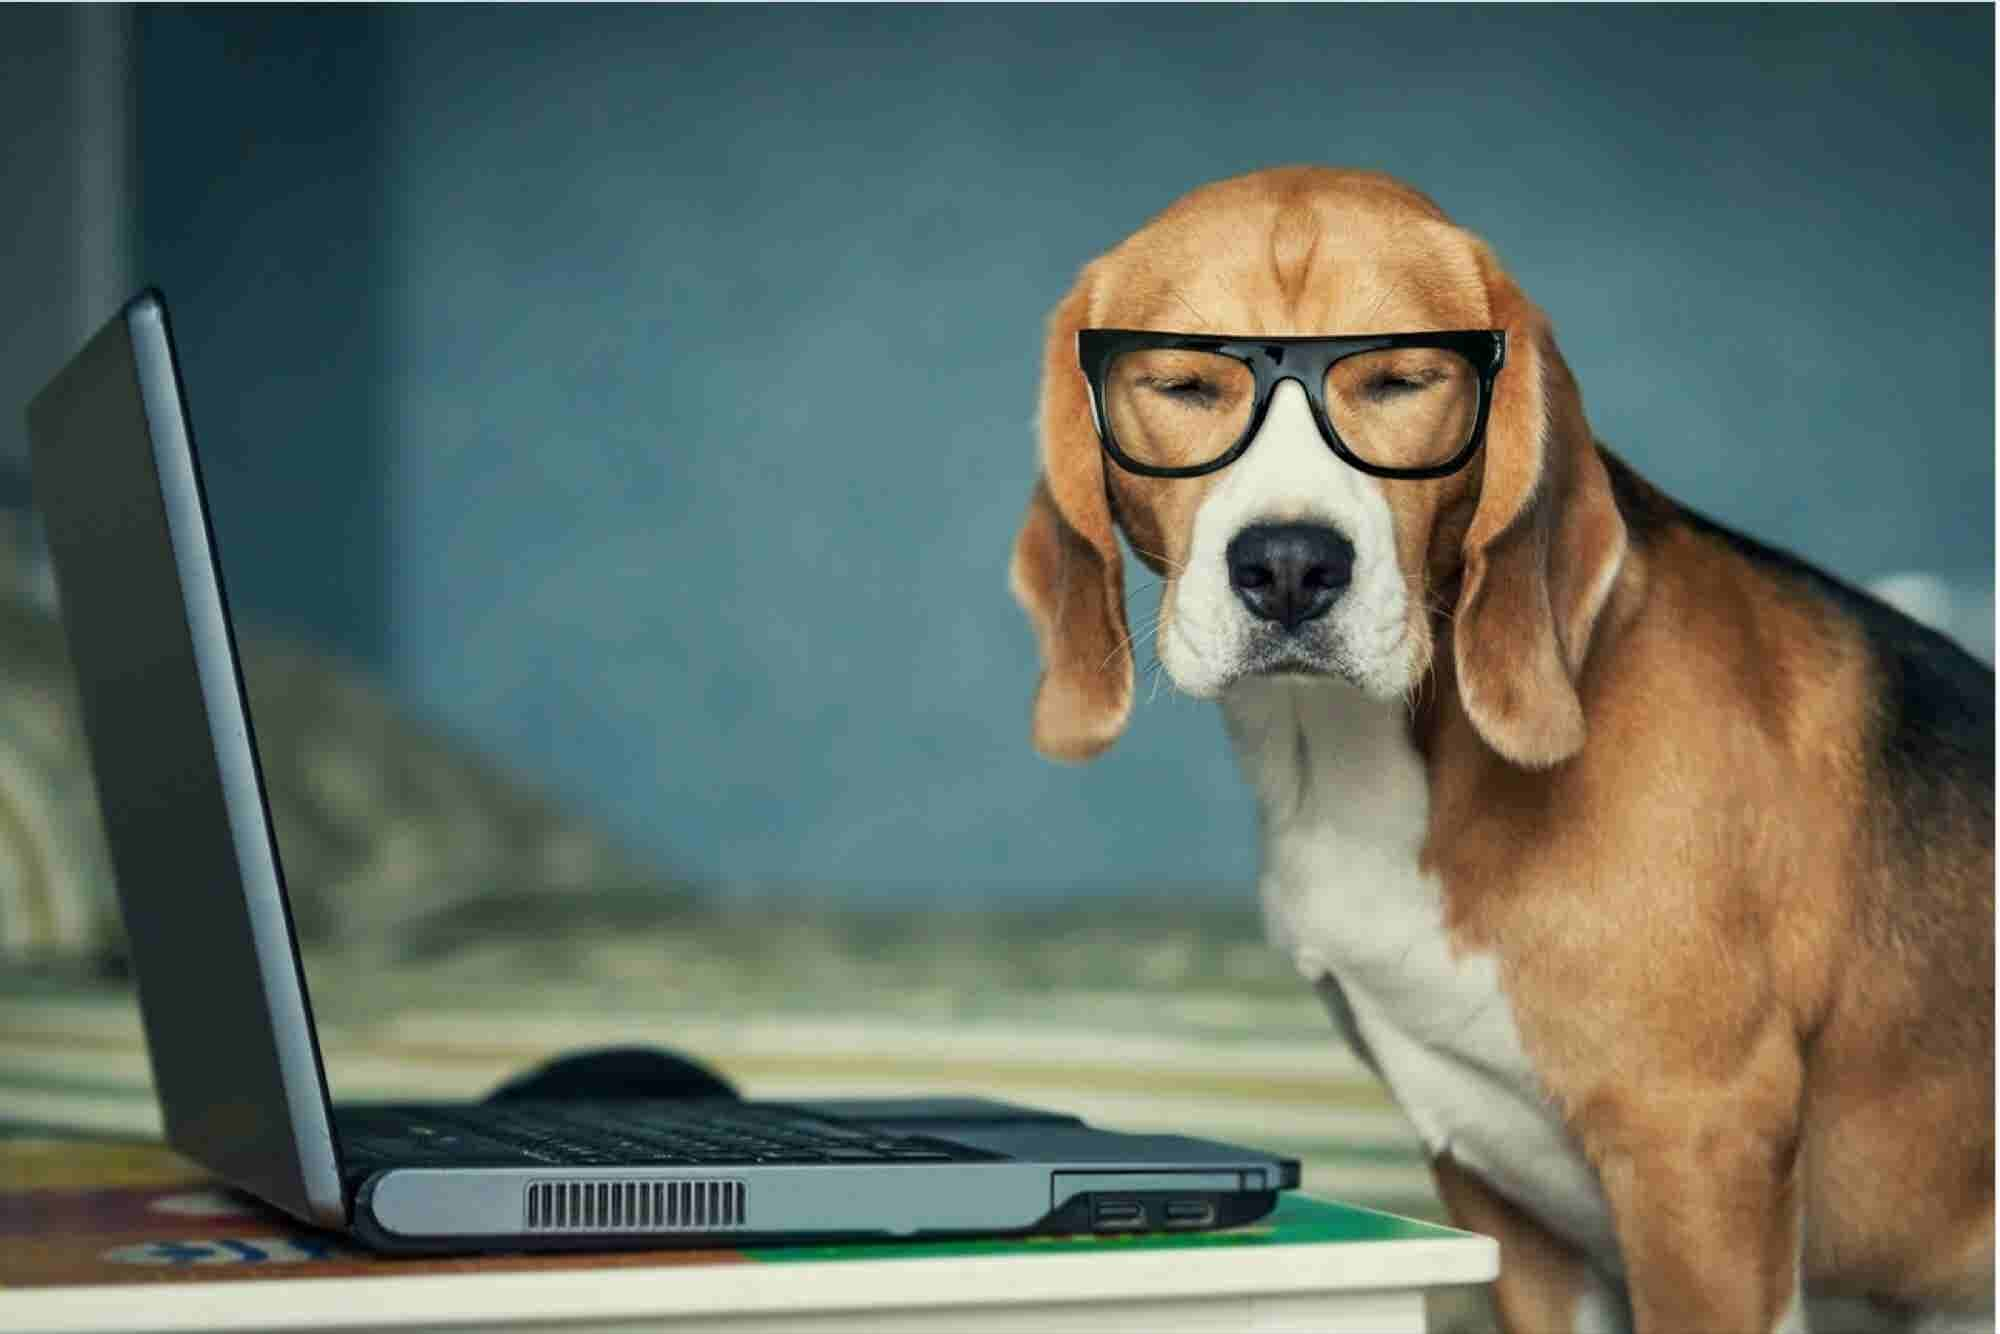 Why I Emailed a Dog